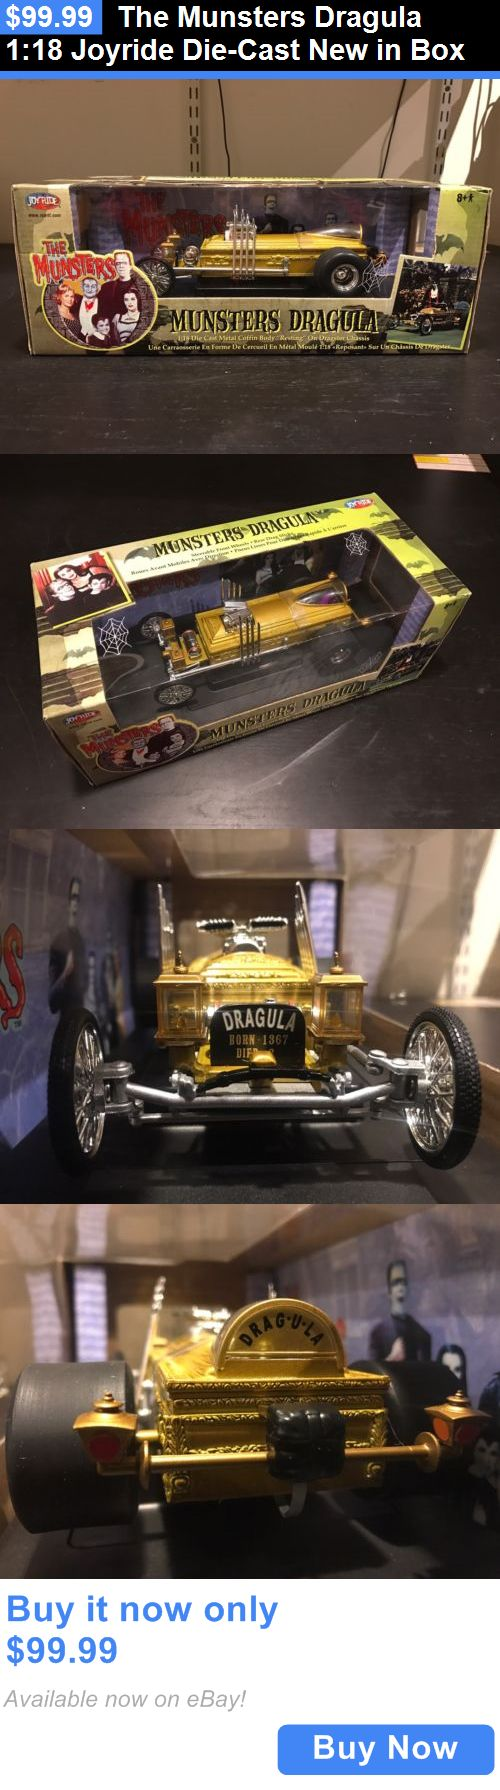 Toys And Games: The Munsters Dragula 1:18 Joyride Die-Cast New In Box BUY IT NOW ONLY: $99.99